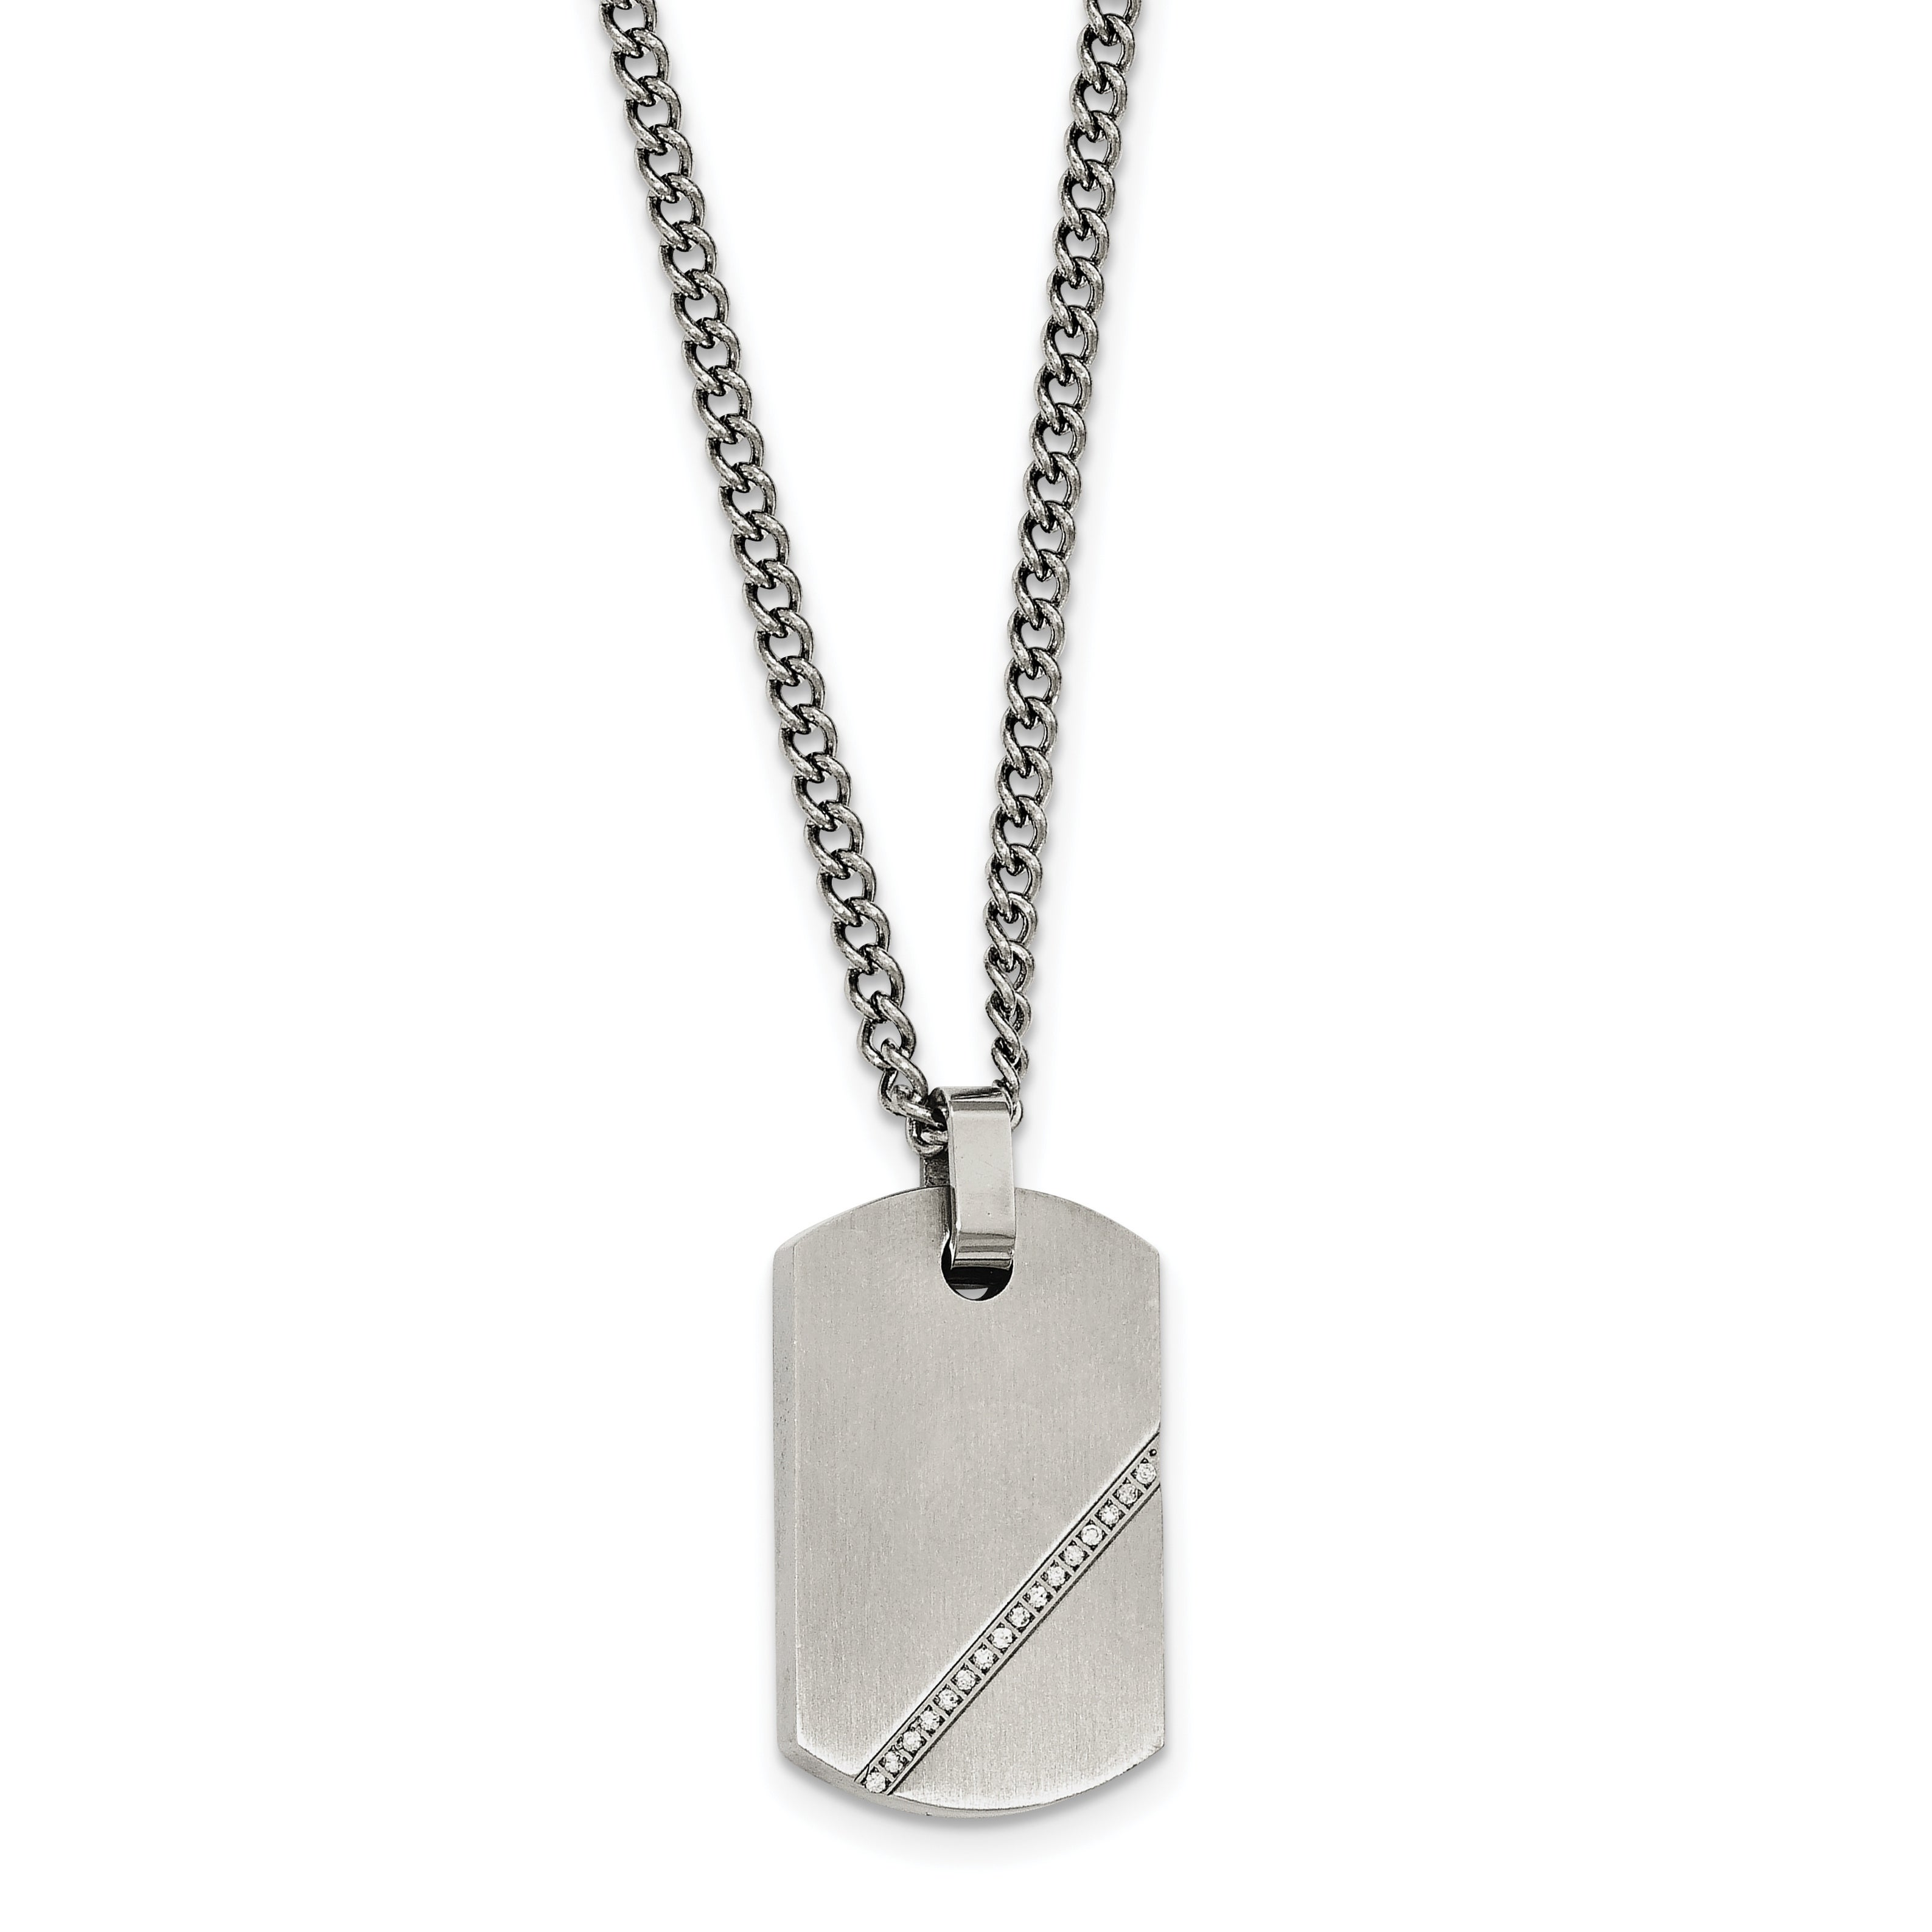 a469e45cedc Chisel Stainless Steel Small Brushed CZ Dog Tag Necklace | eBay